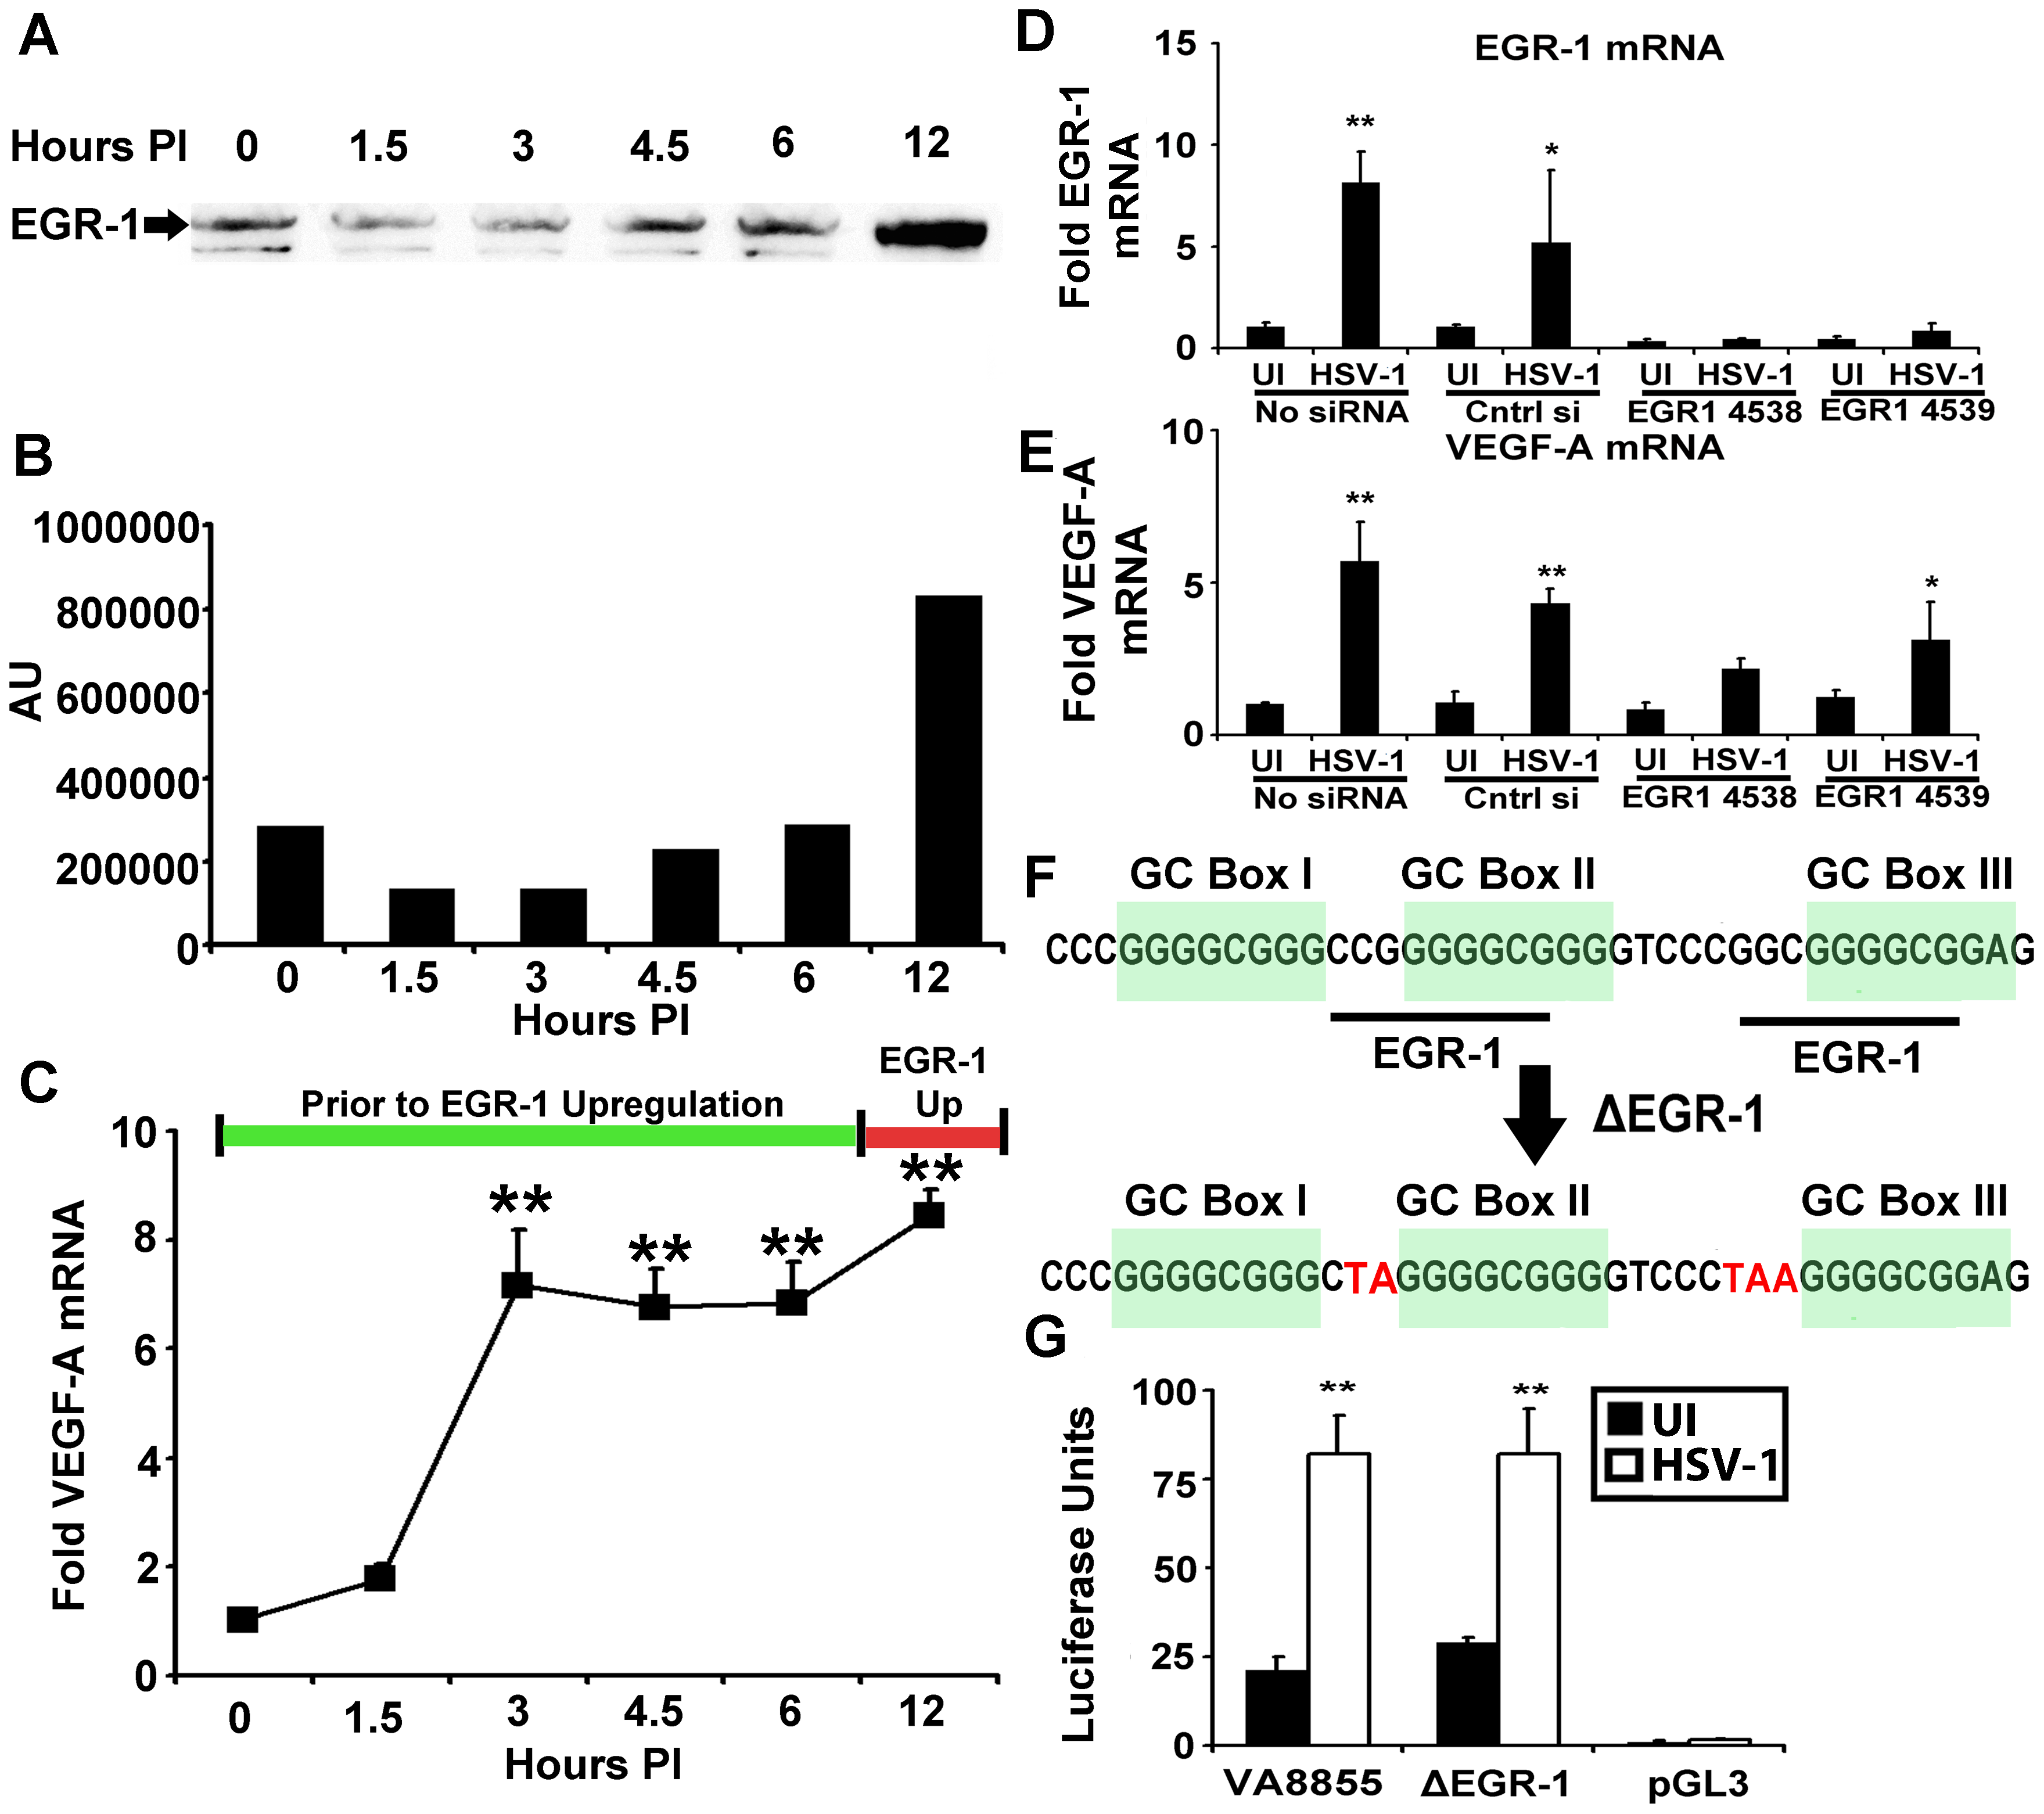 EGR-1 is not required for VEGF-A Upregulation.